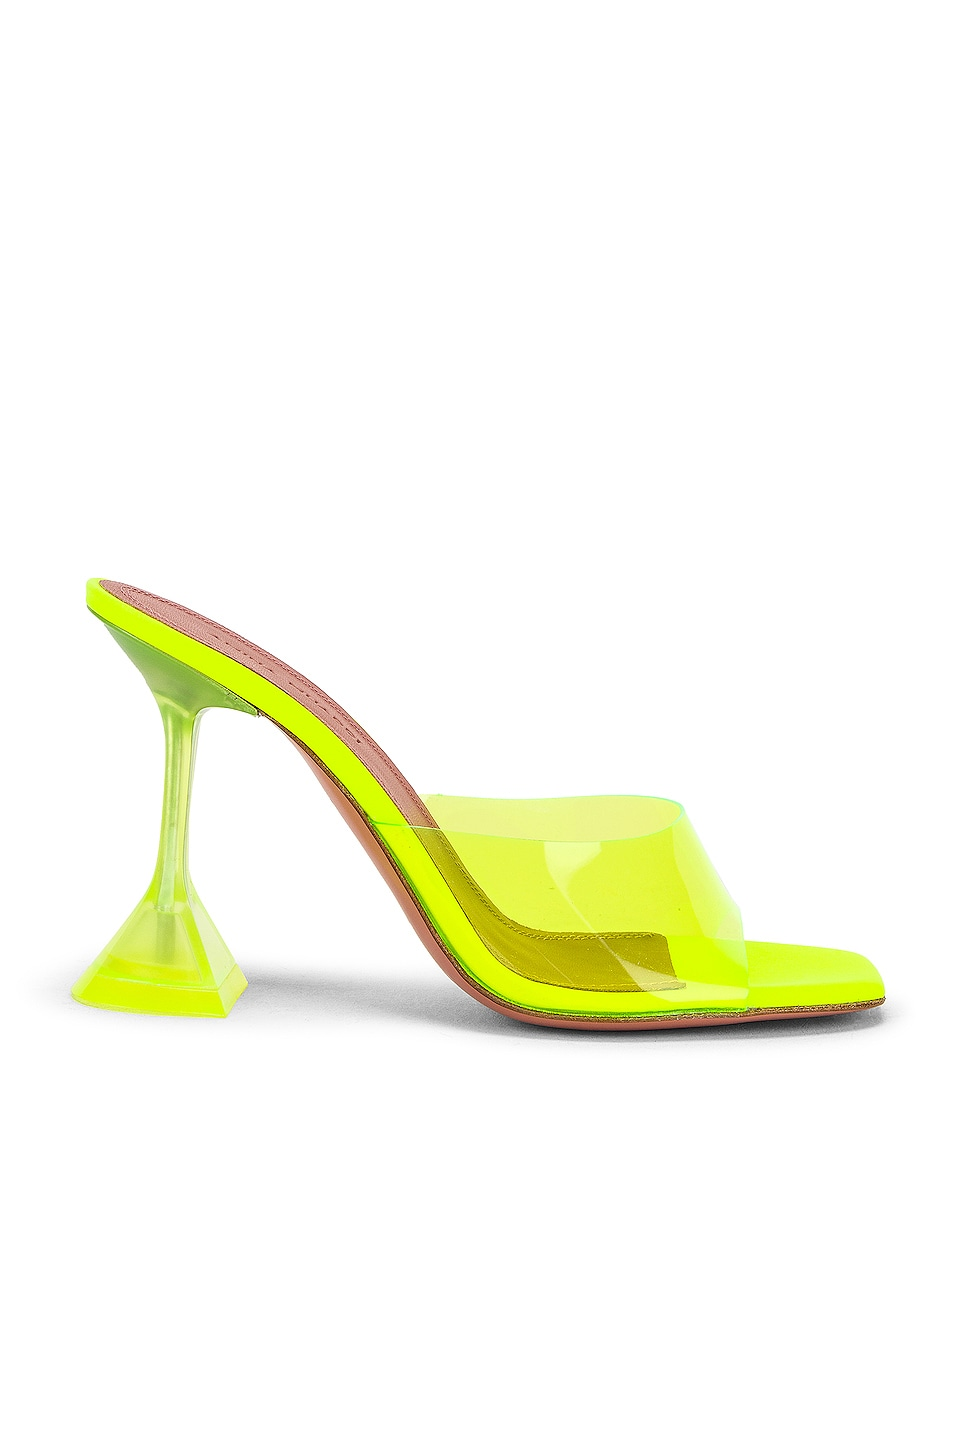 Image 1 of AMINA MUADDI Lupita Glass Sandal in Yellow Fluo